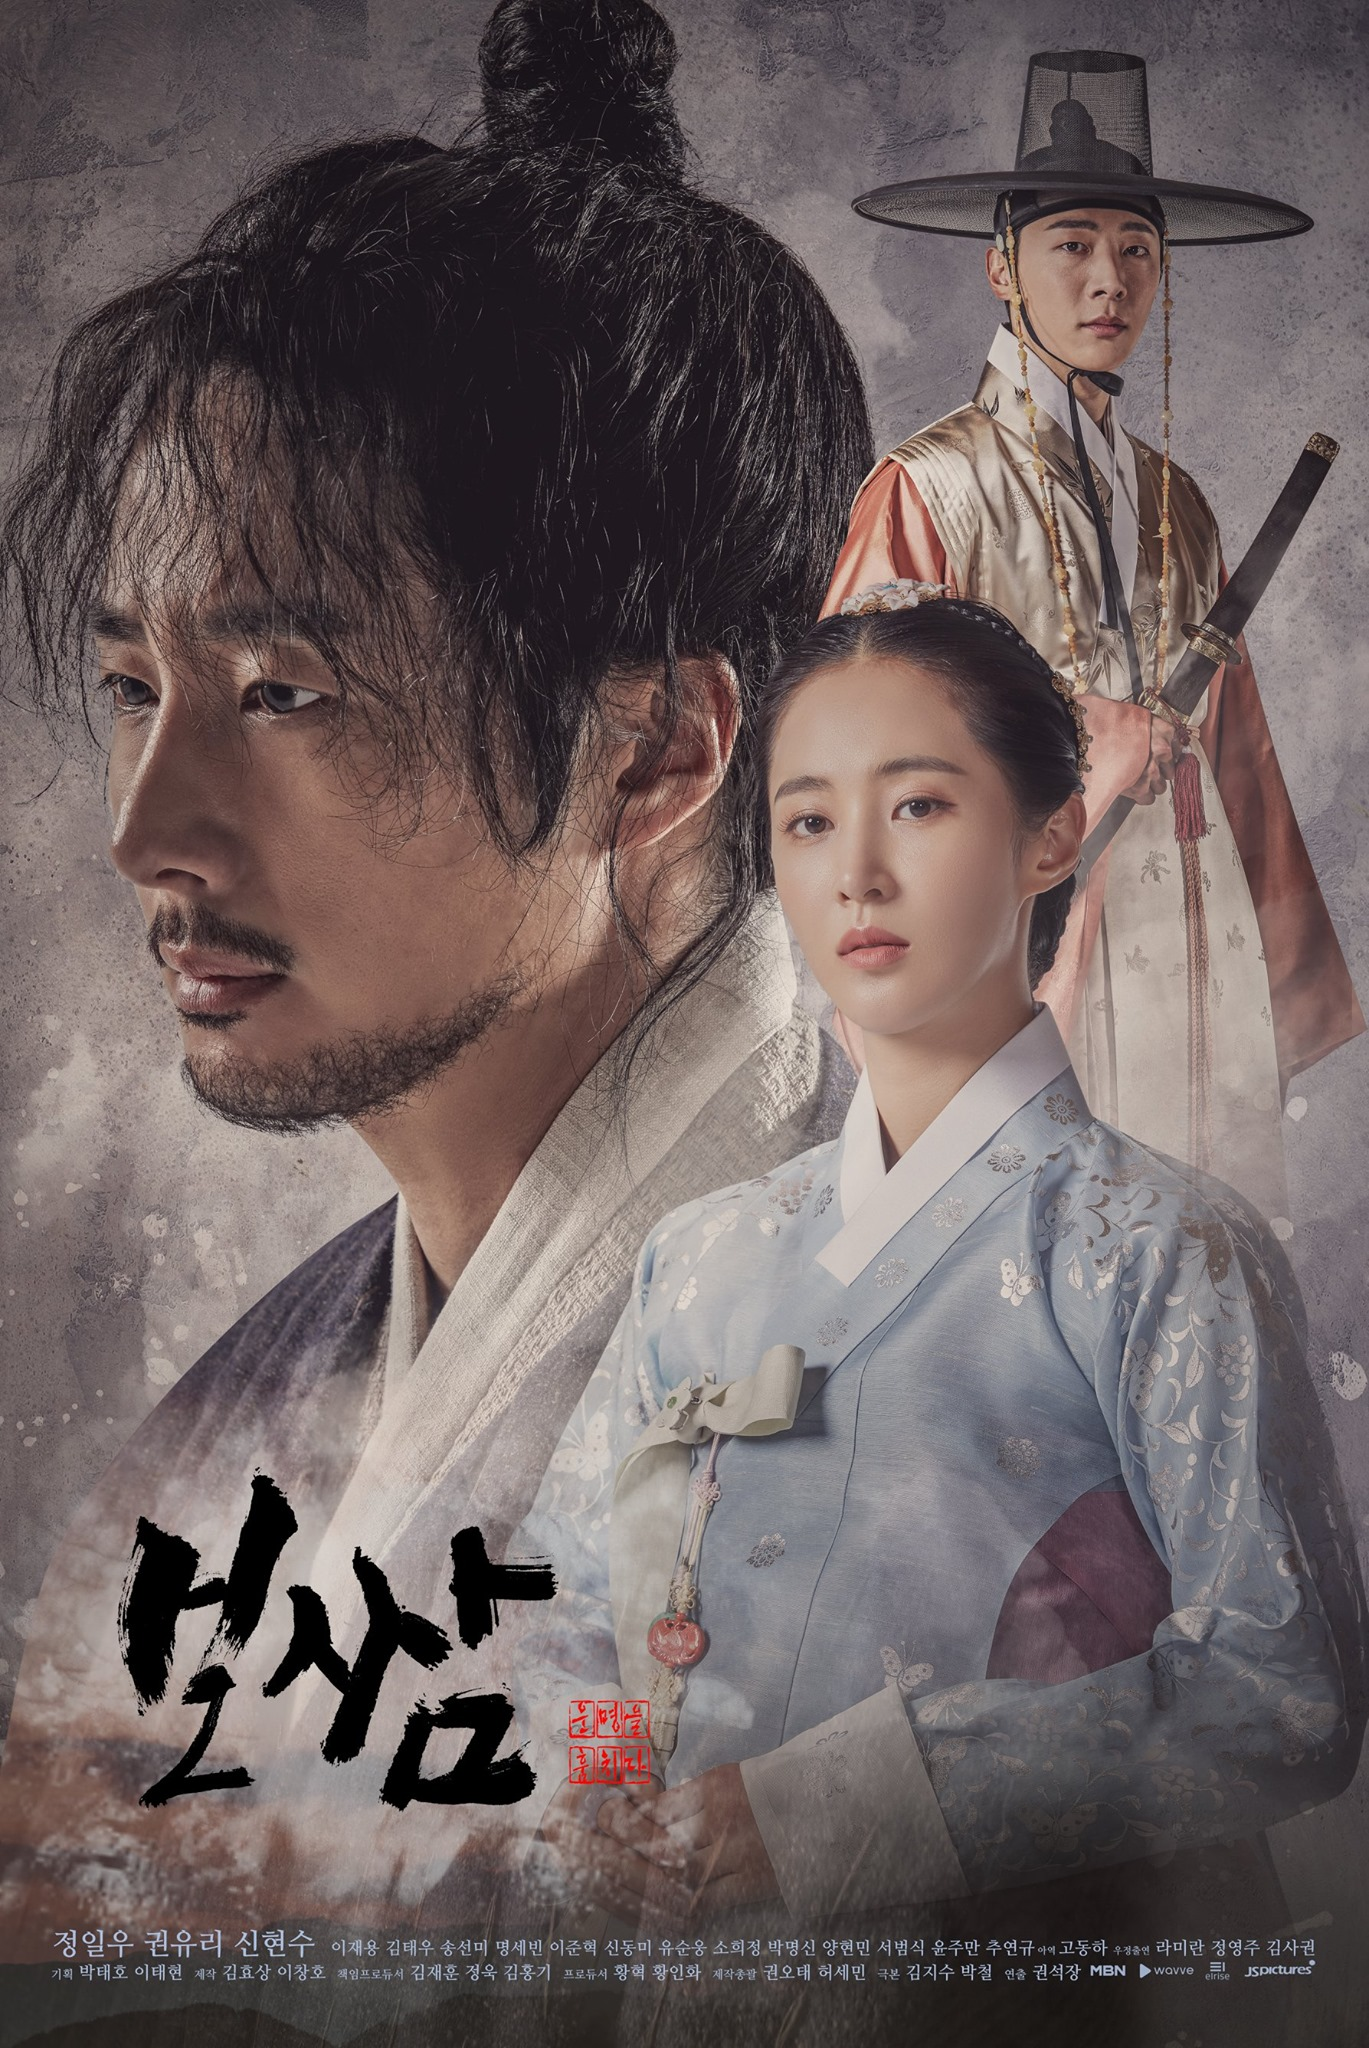 Bossam was a custom in Joseon period, in which a bachelor, who missed marriage secretly wrapped up a widow in a blanket at night and made her his wife. This custom changes the fate of Ba Woo when he kidnaps a princess by mistake.